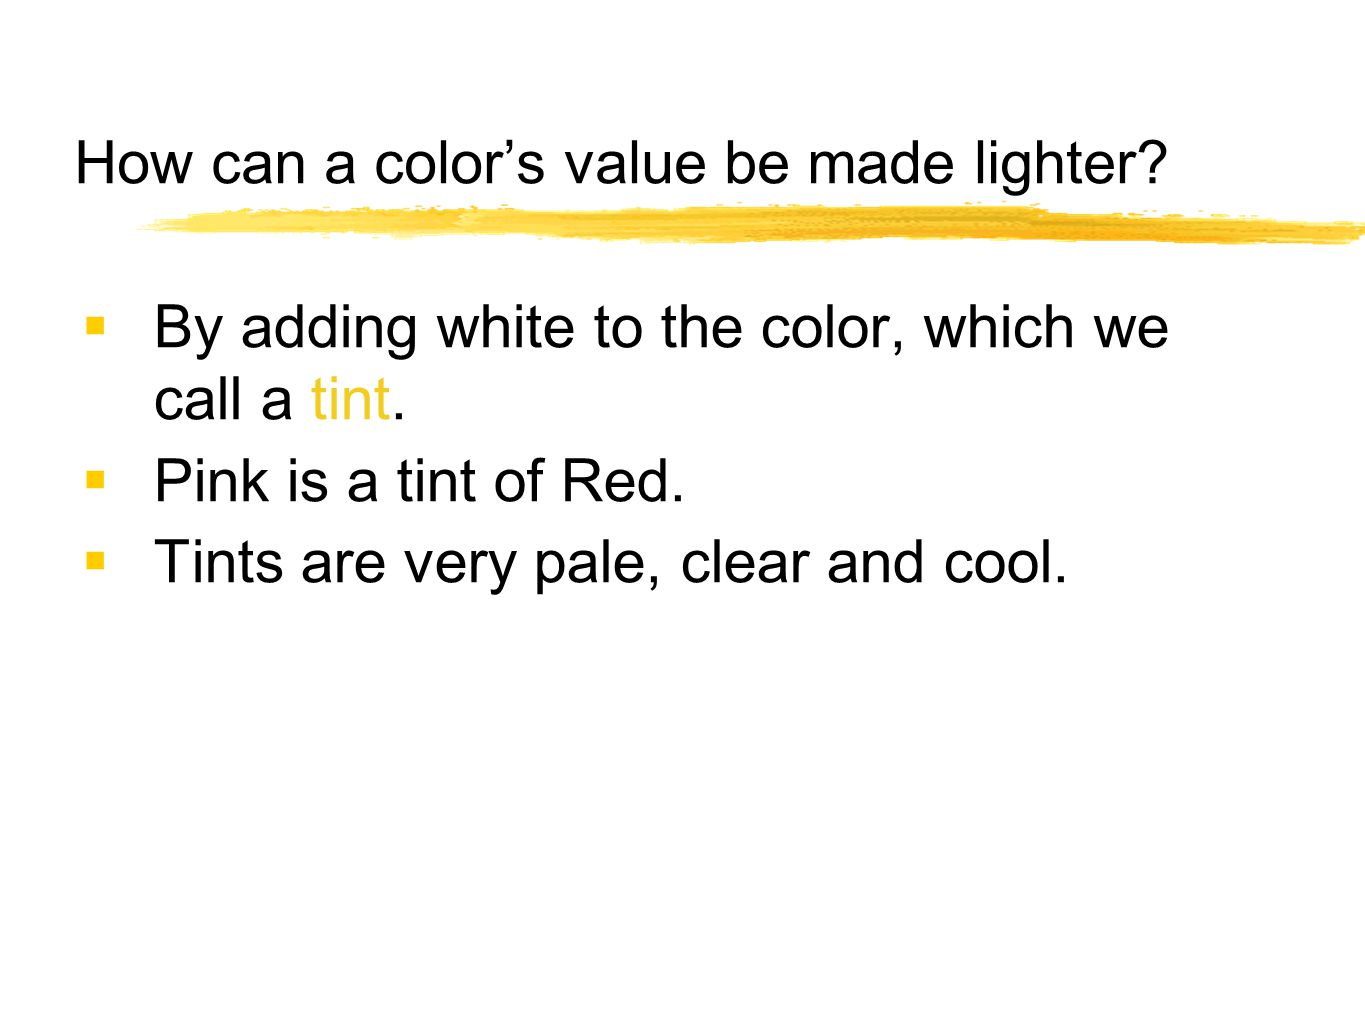 How can a color's value be made lighter